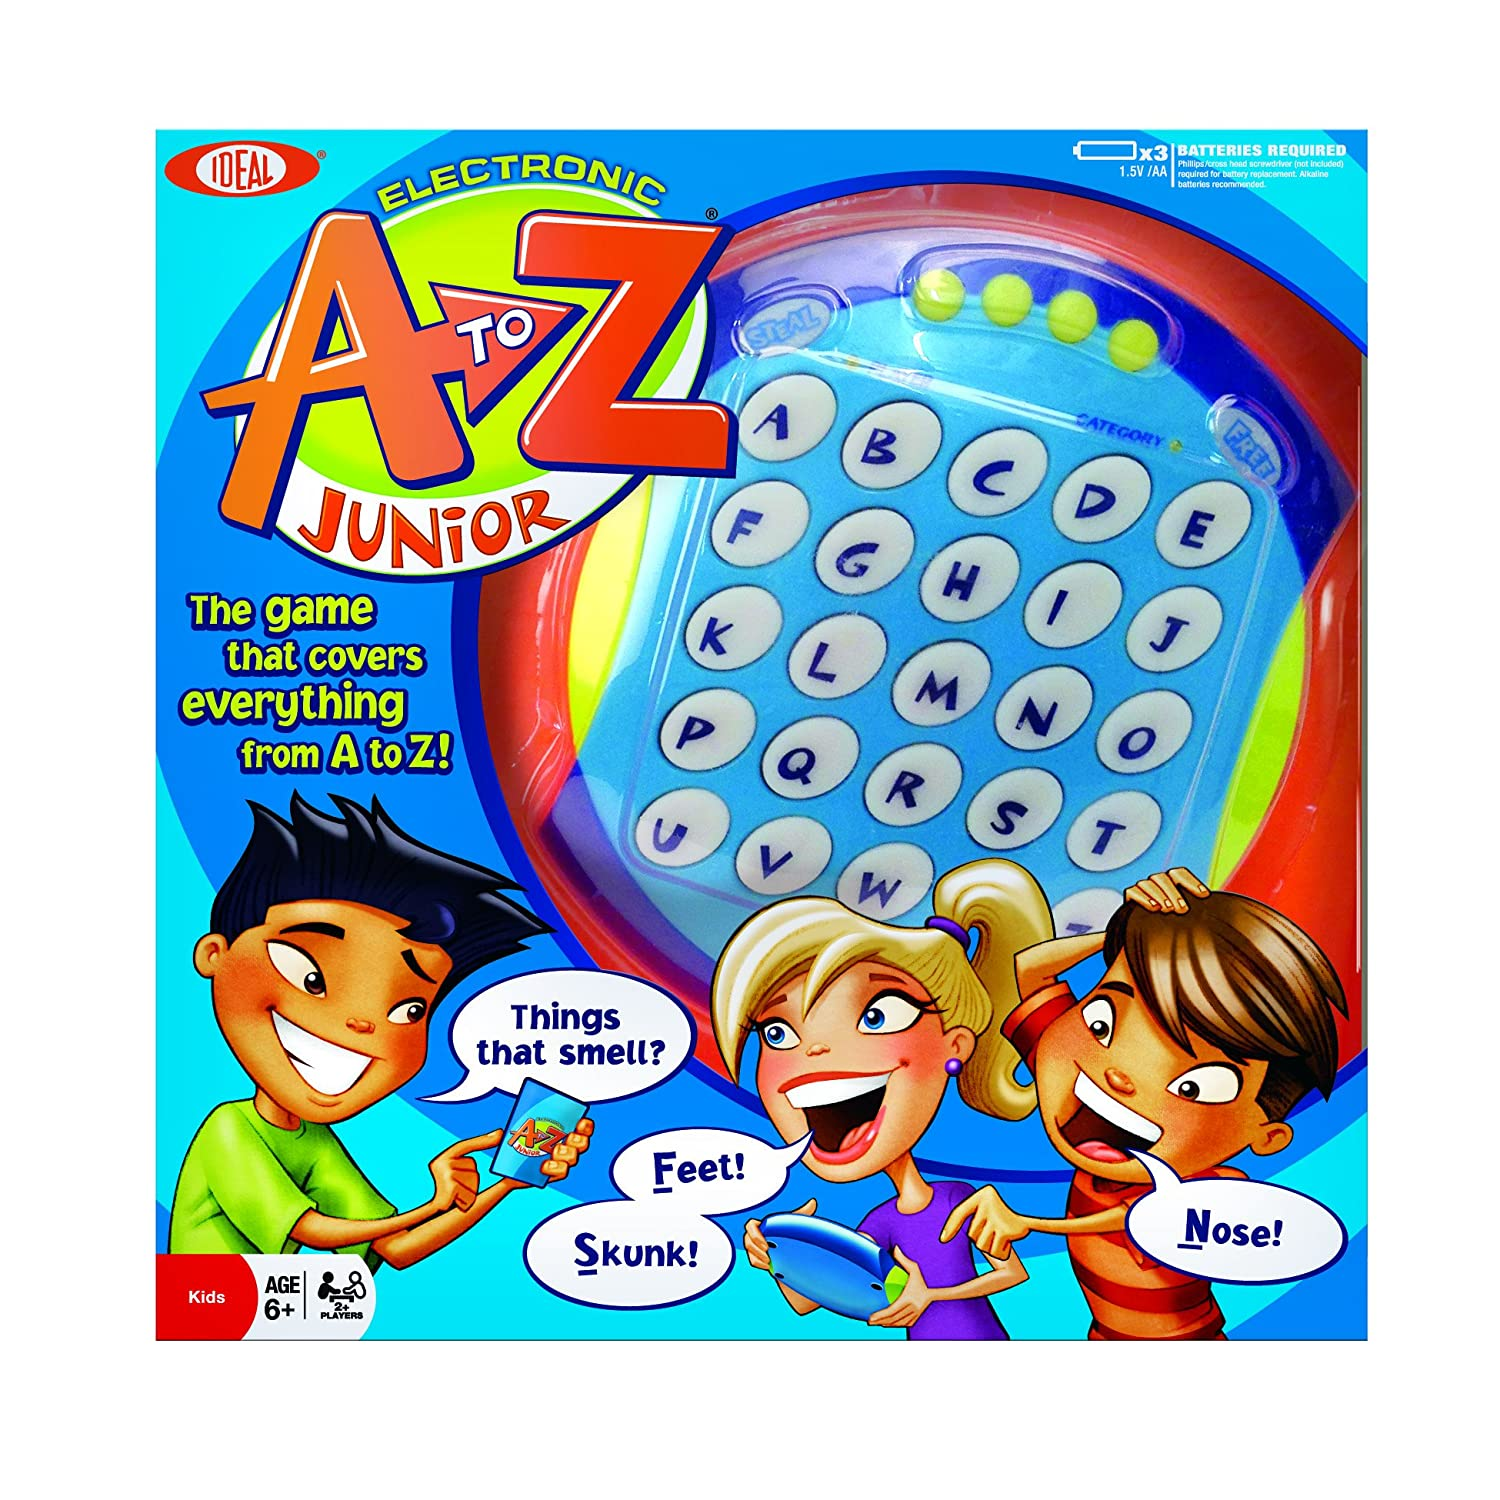 Amazon Com Ideal Electronic A To Z Junior Toys Games